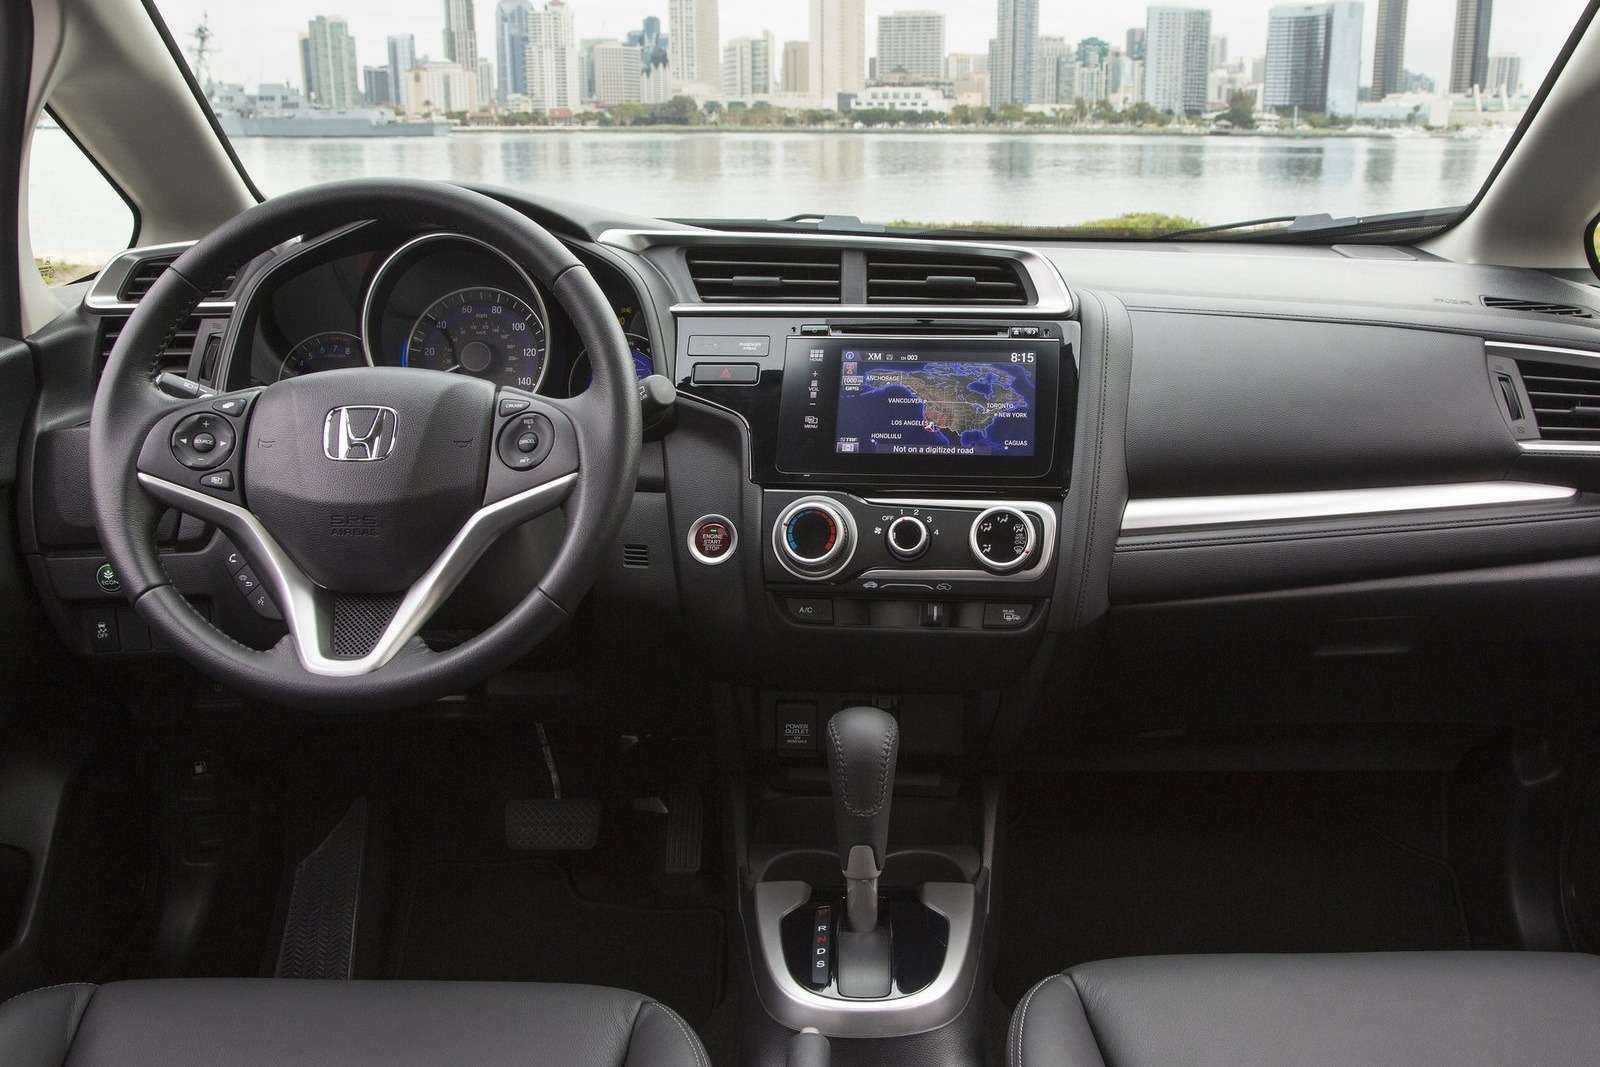 Honda-Fit_2015_1600x1200_wallpaper_43